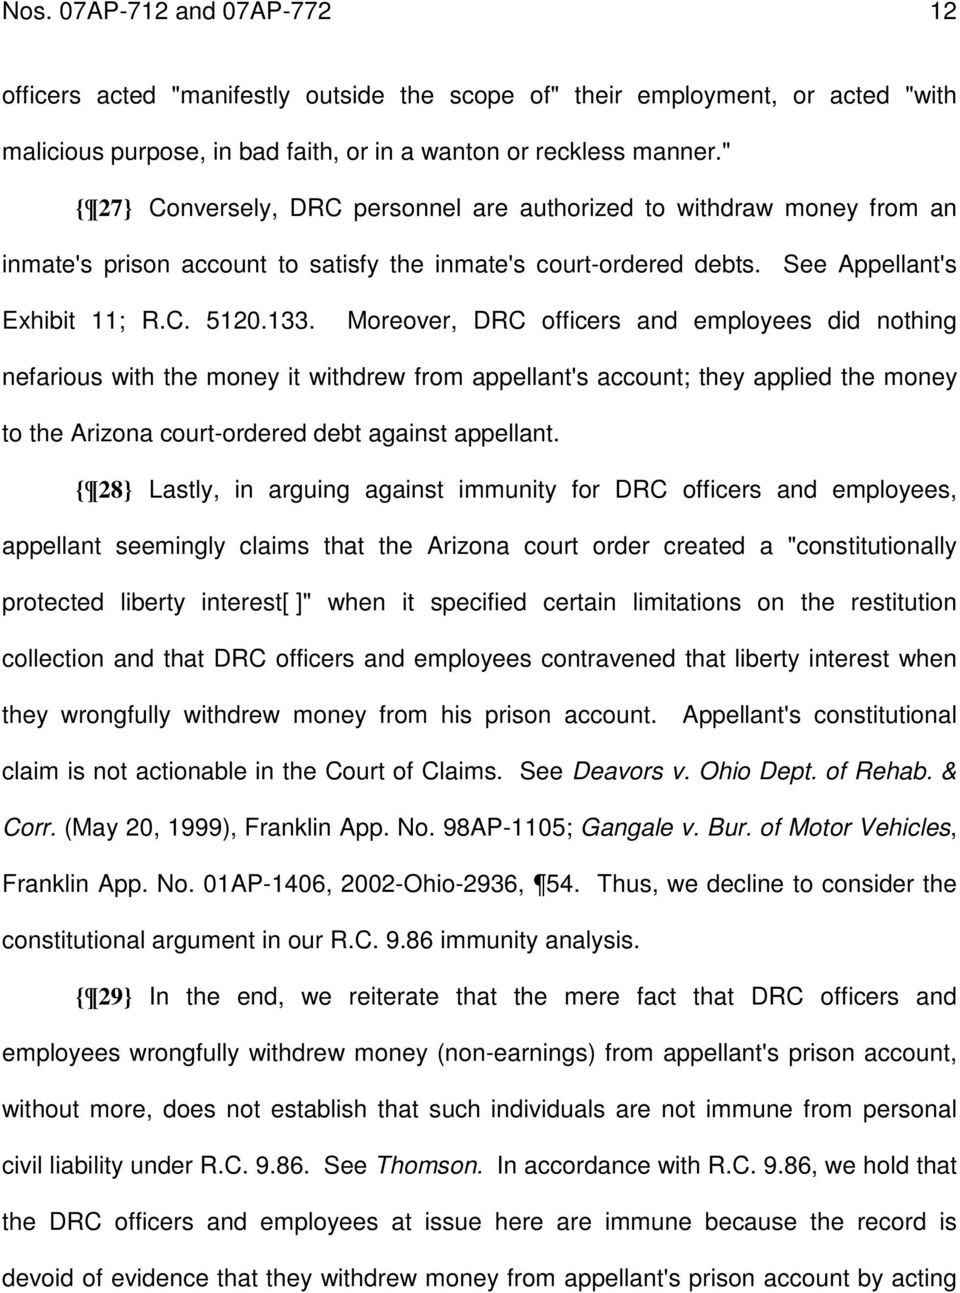 Moreover, DRC officers and employees did nothing nefarious with the money it withdrew from appellant's account; they applied the money to the Arizona court-ordered debt against appellant.